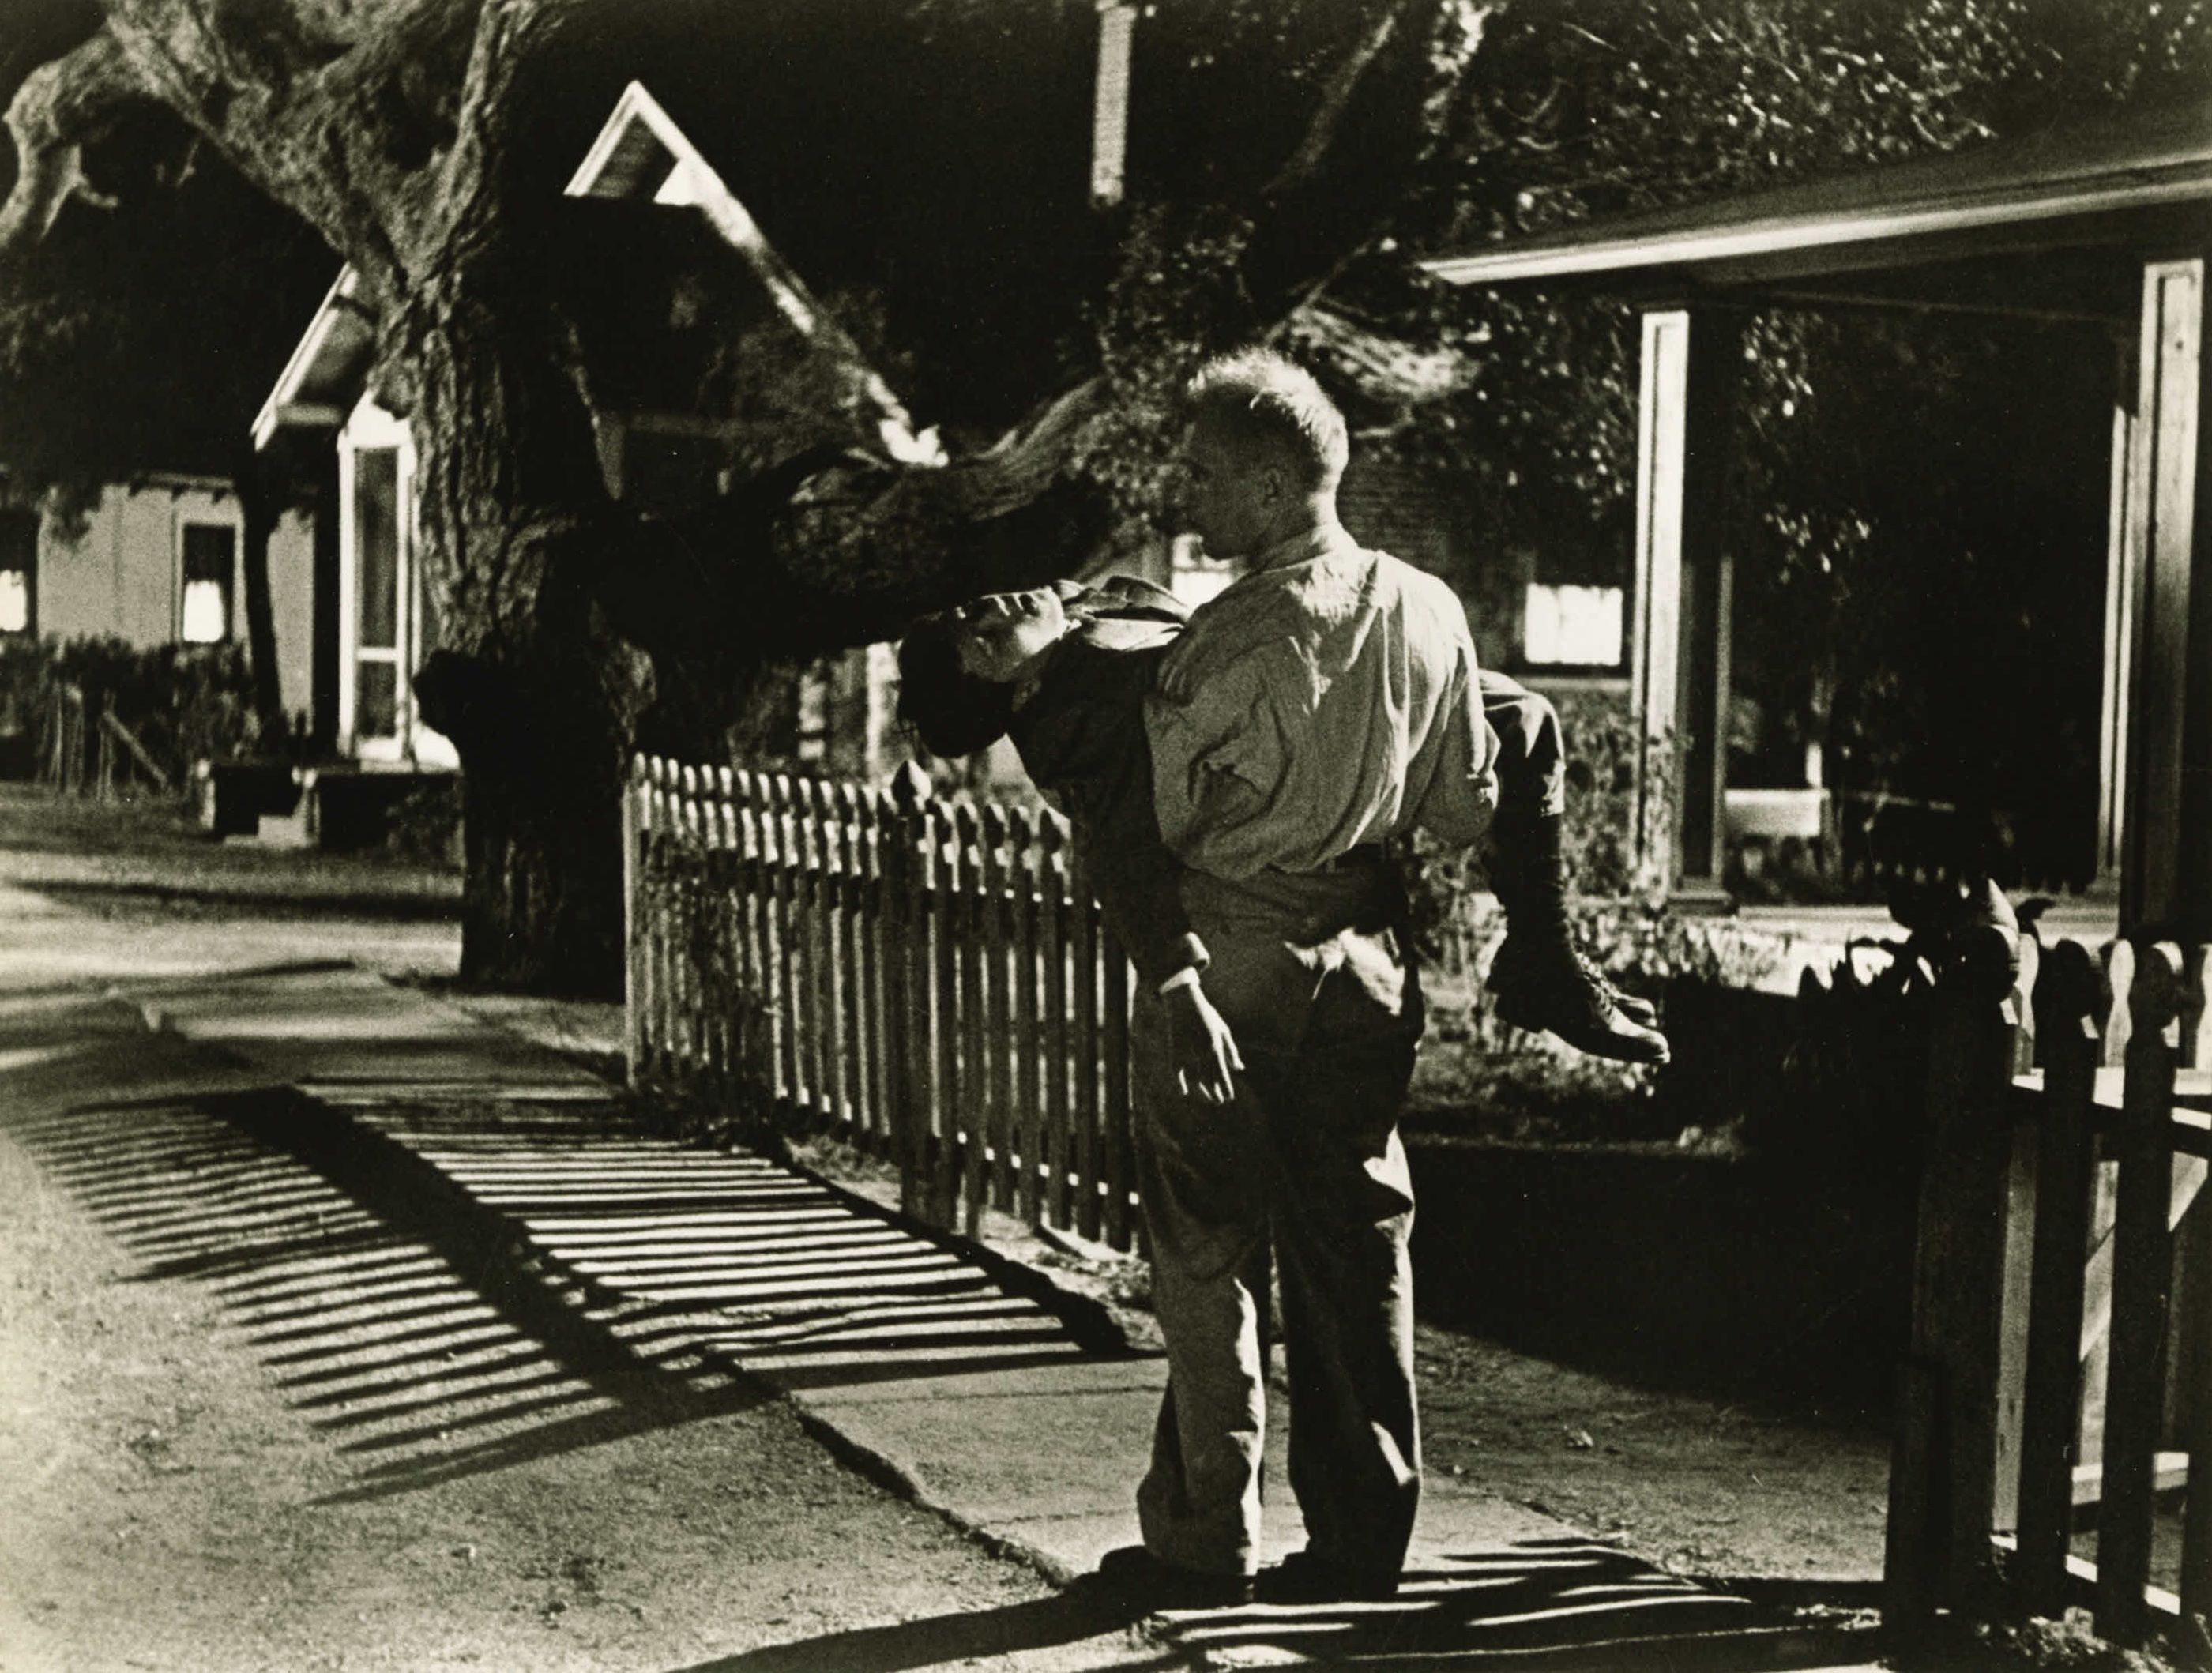 To Kill A Mockingbird Quotes About Boo Radley: Boo Radley, Saving Jem After Killing His Attacker By